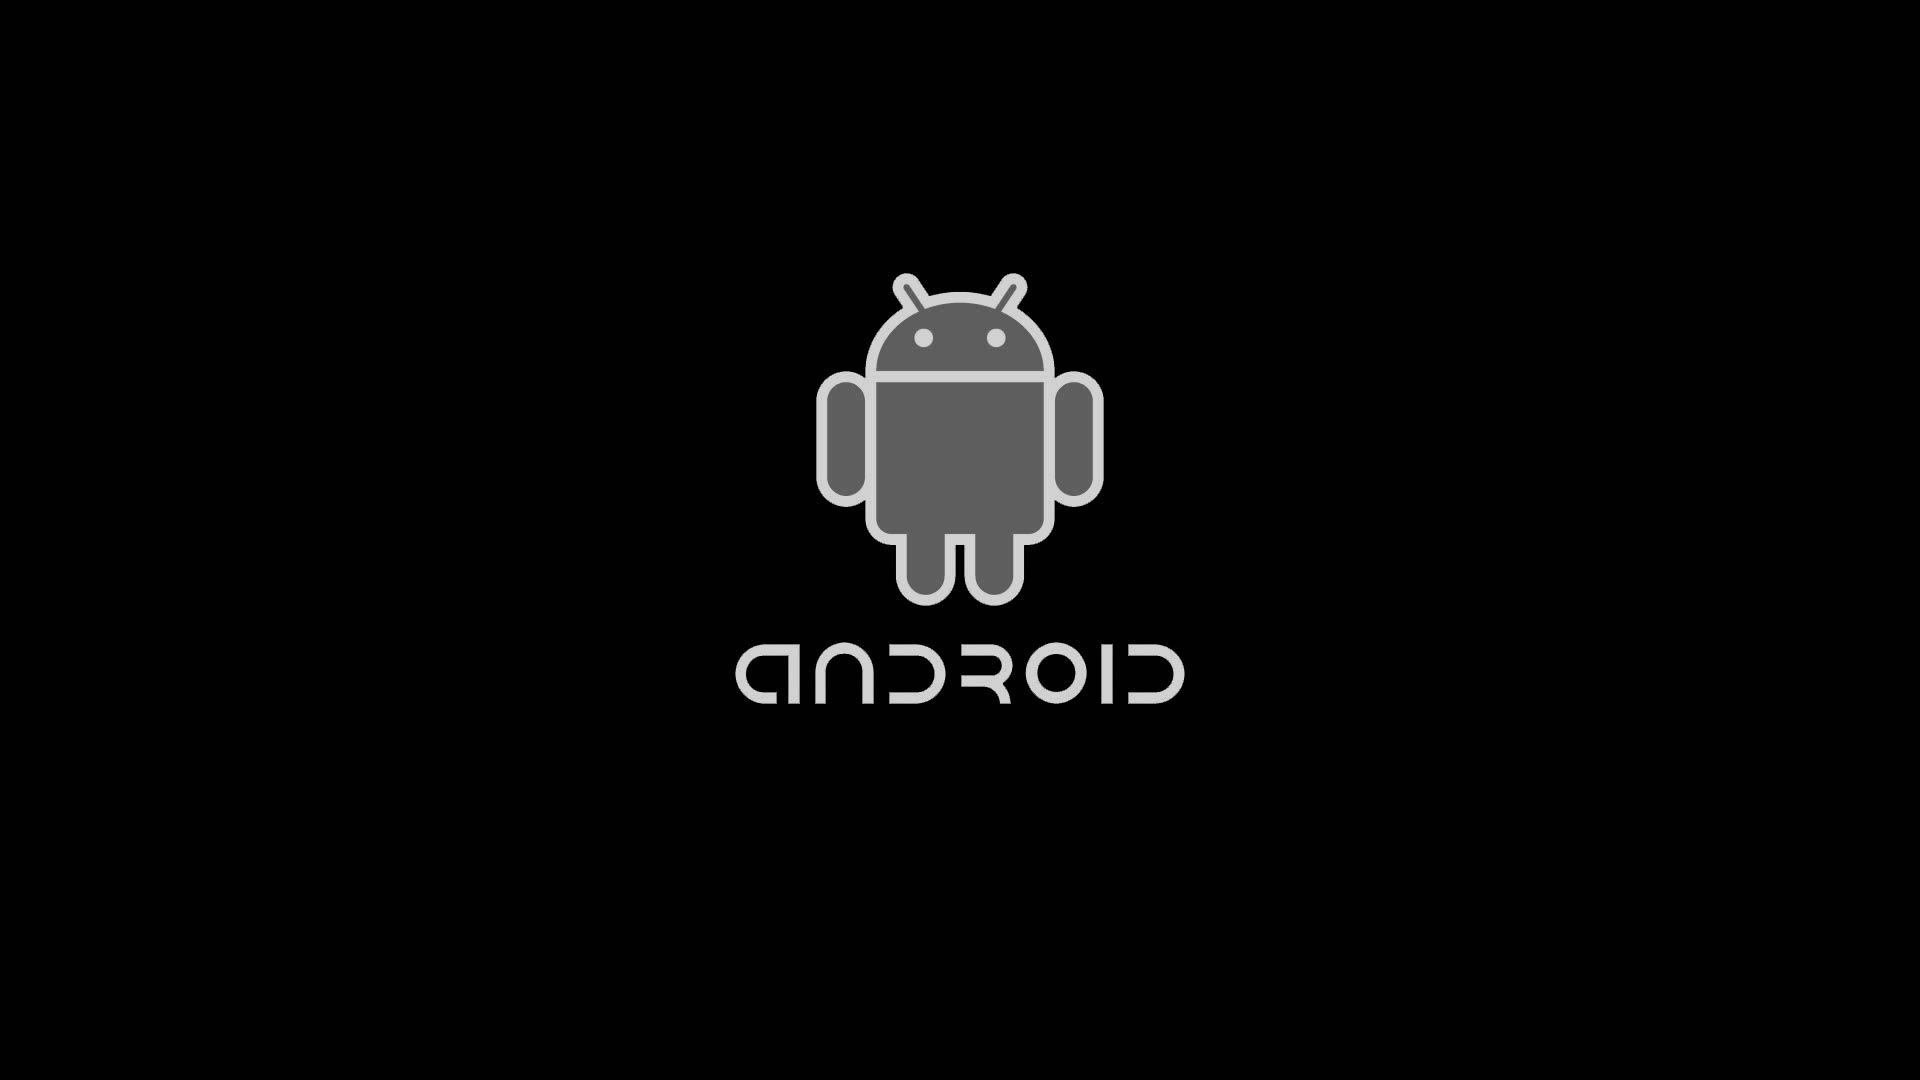 Android logo Black Wallpaper